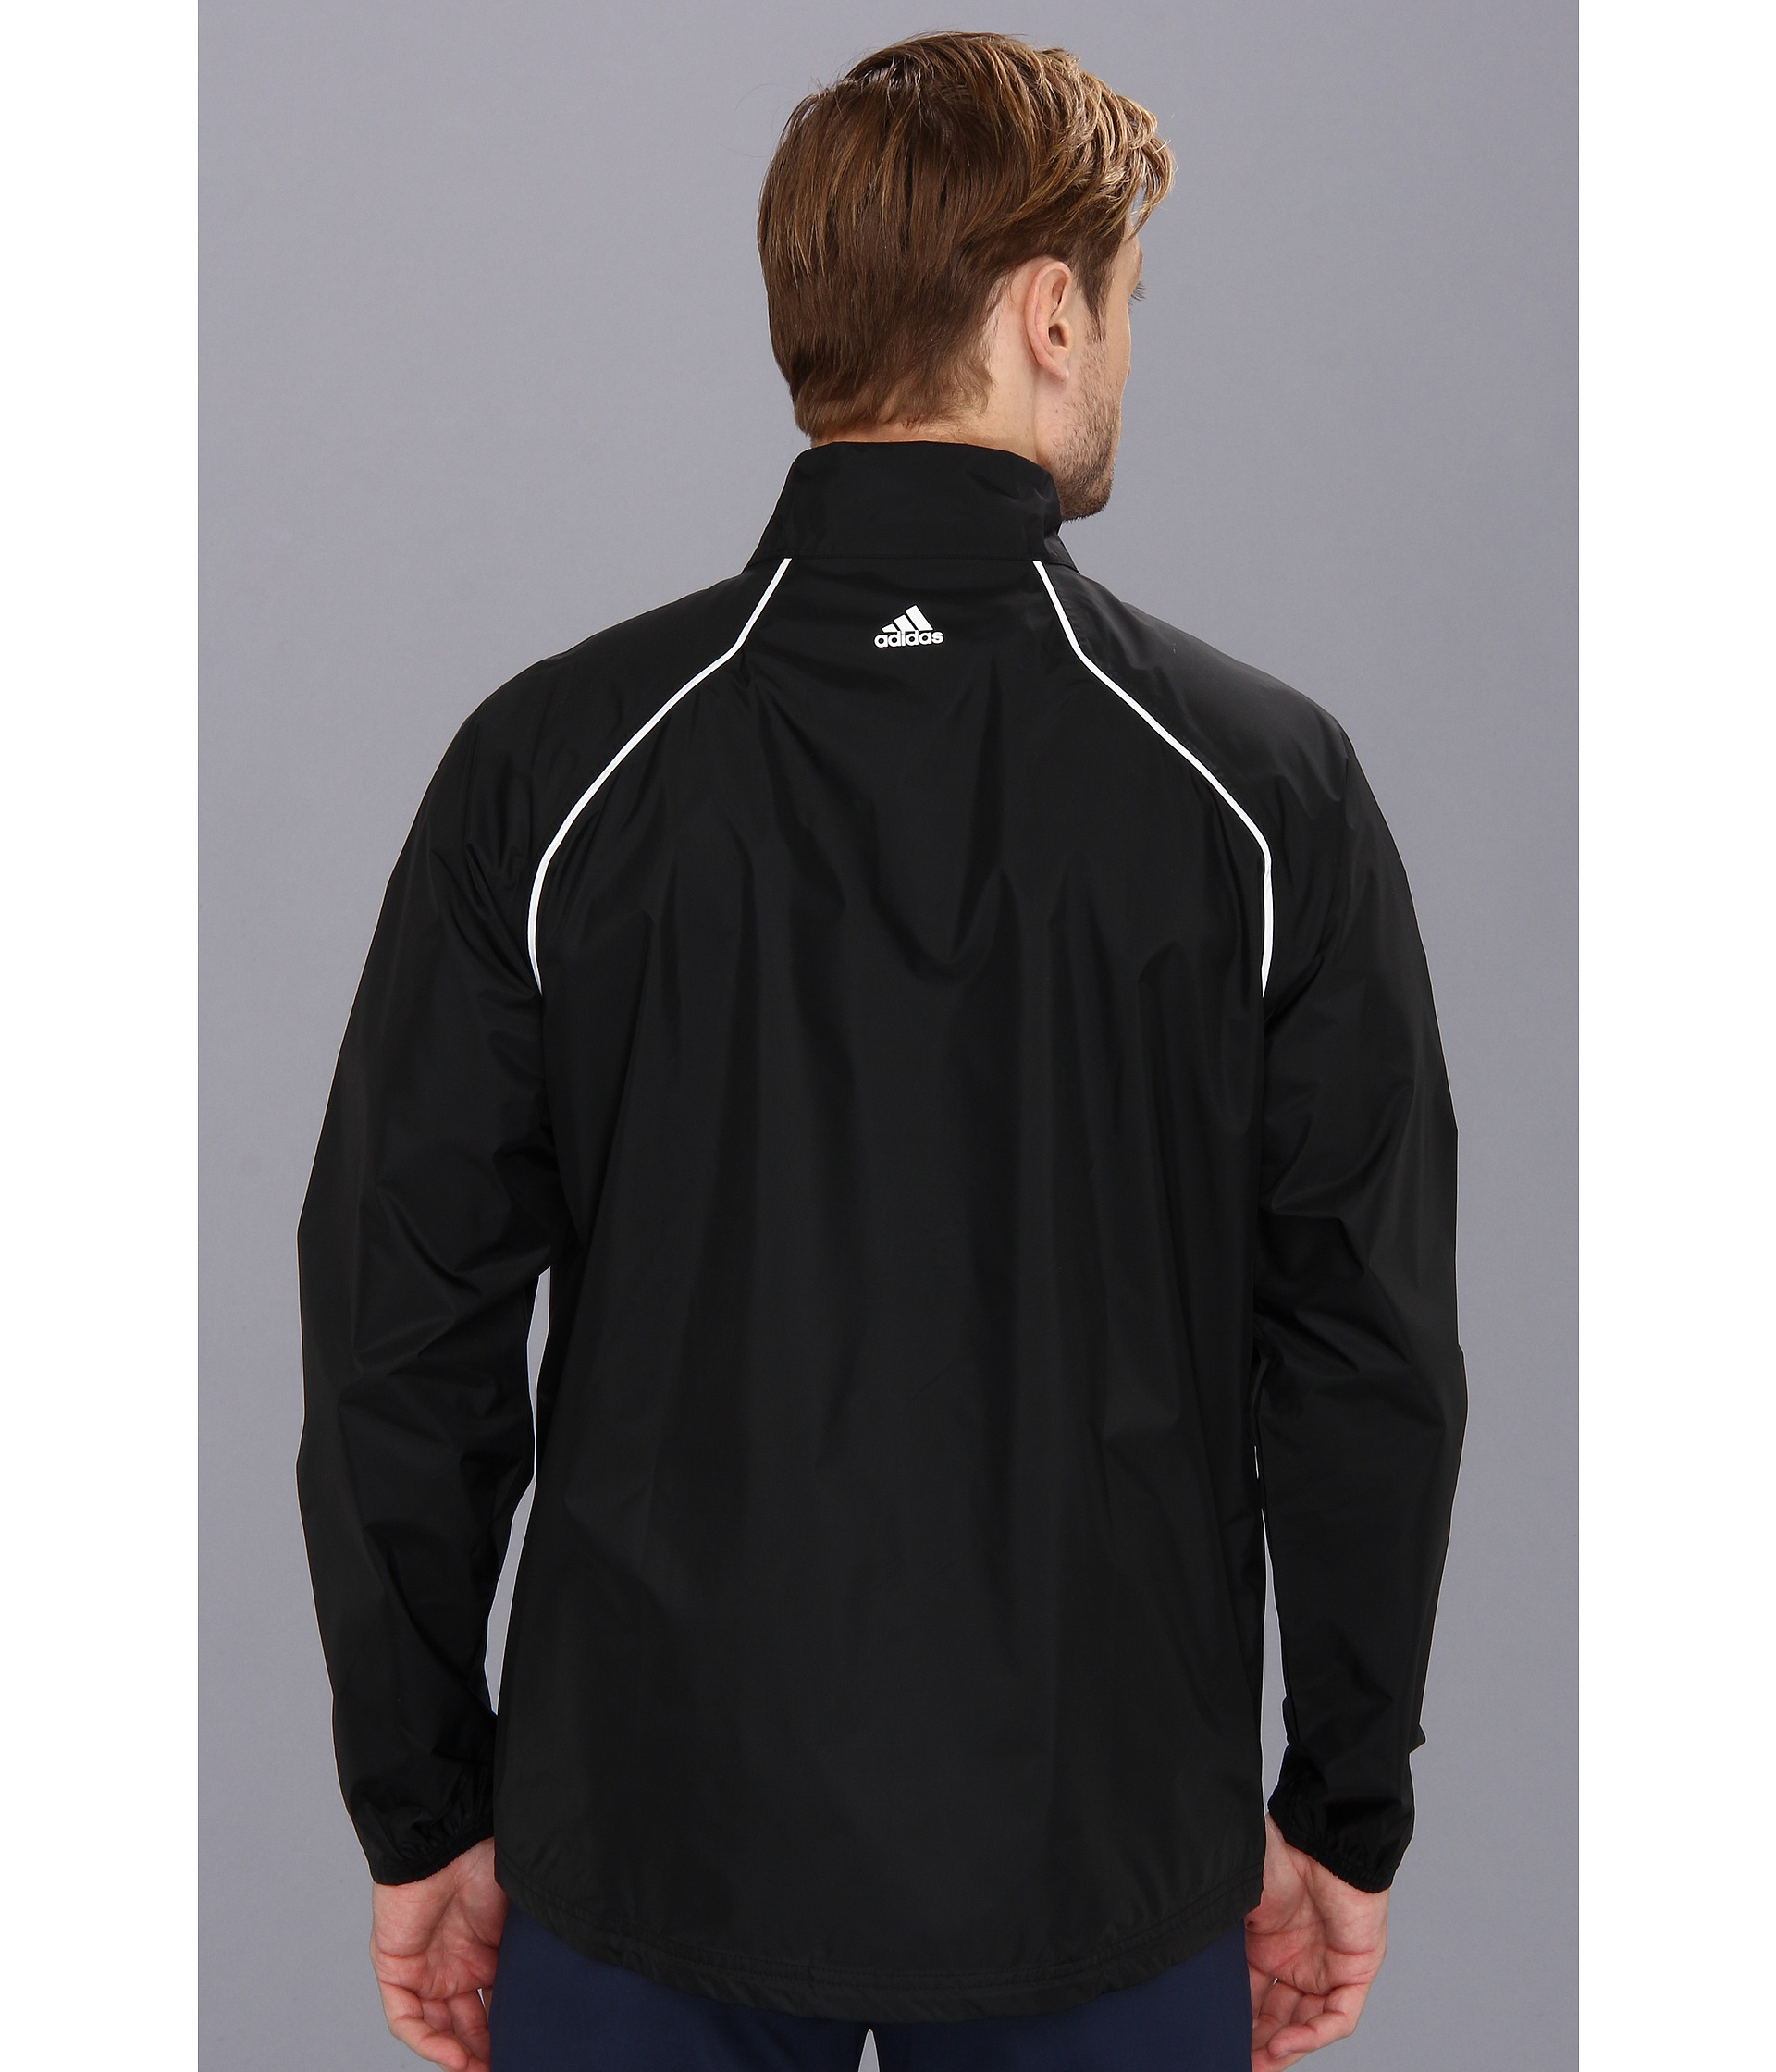 Adidas golf provisional rain jacket black shipped free for Adidas golf rain shirt